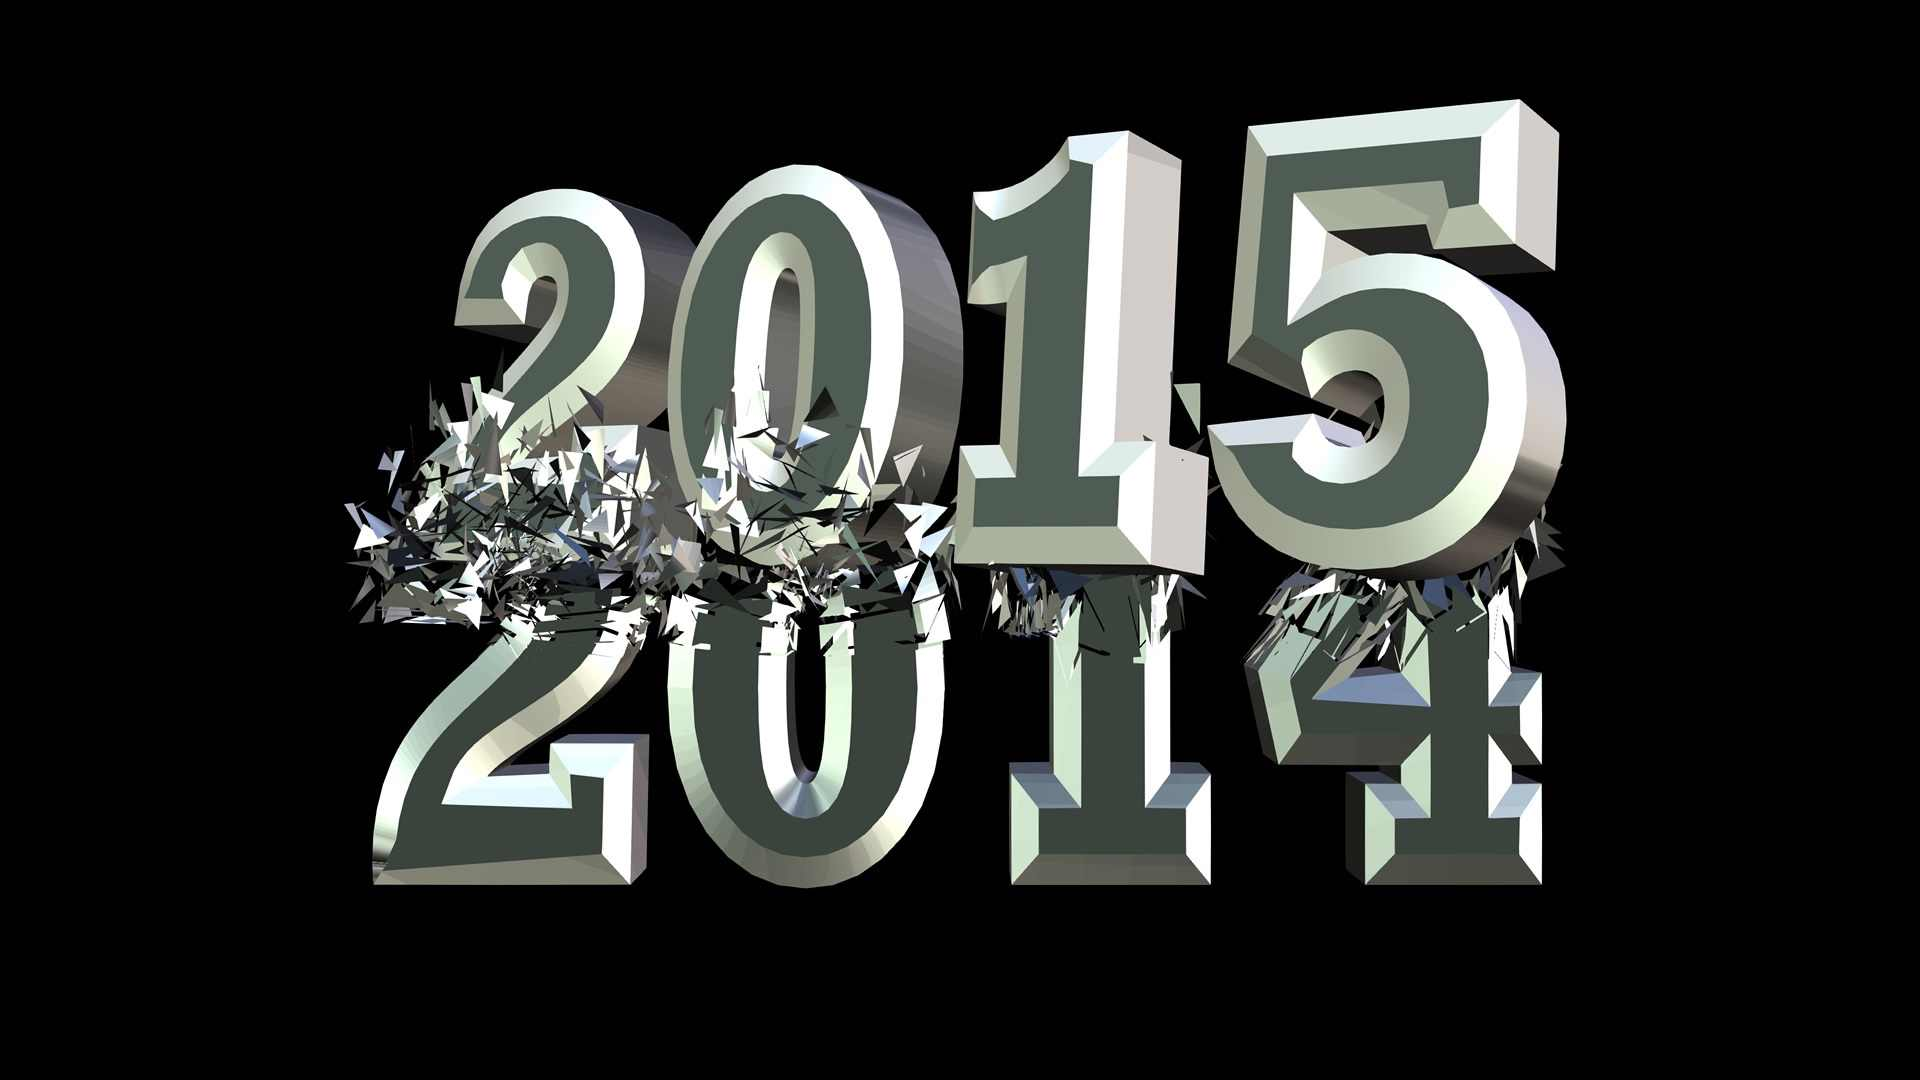 Happy New Year 2015 Clip Art High Image Wallpaper